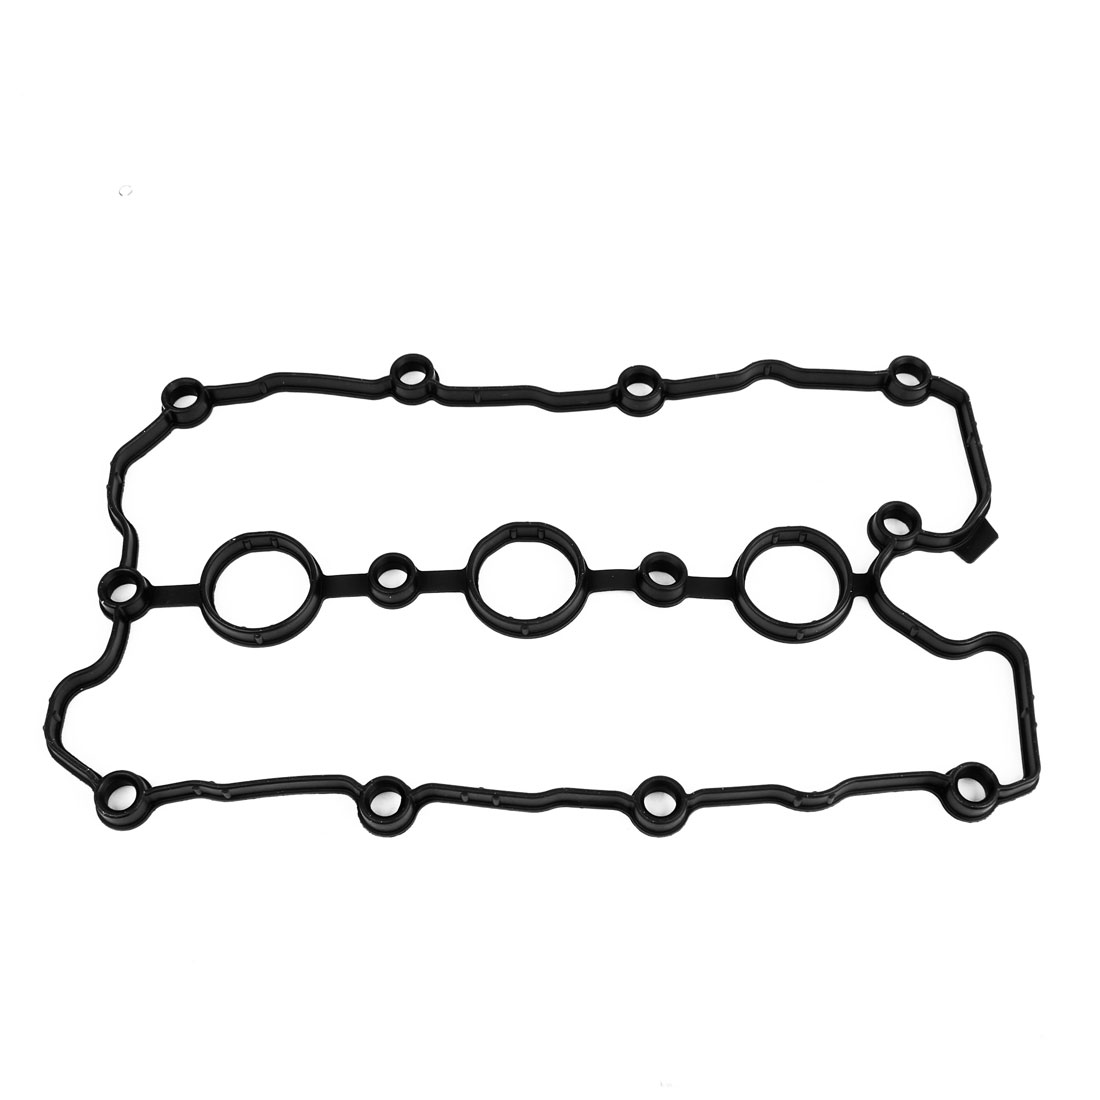 Car Auto Engine Right Side Rocker Valve Cover Gasket Seal Black 06E103484G